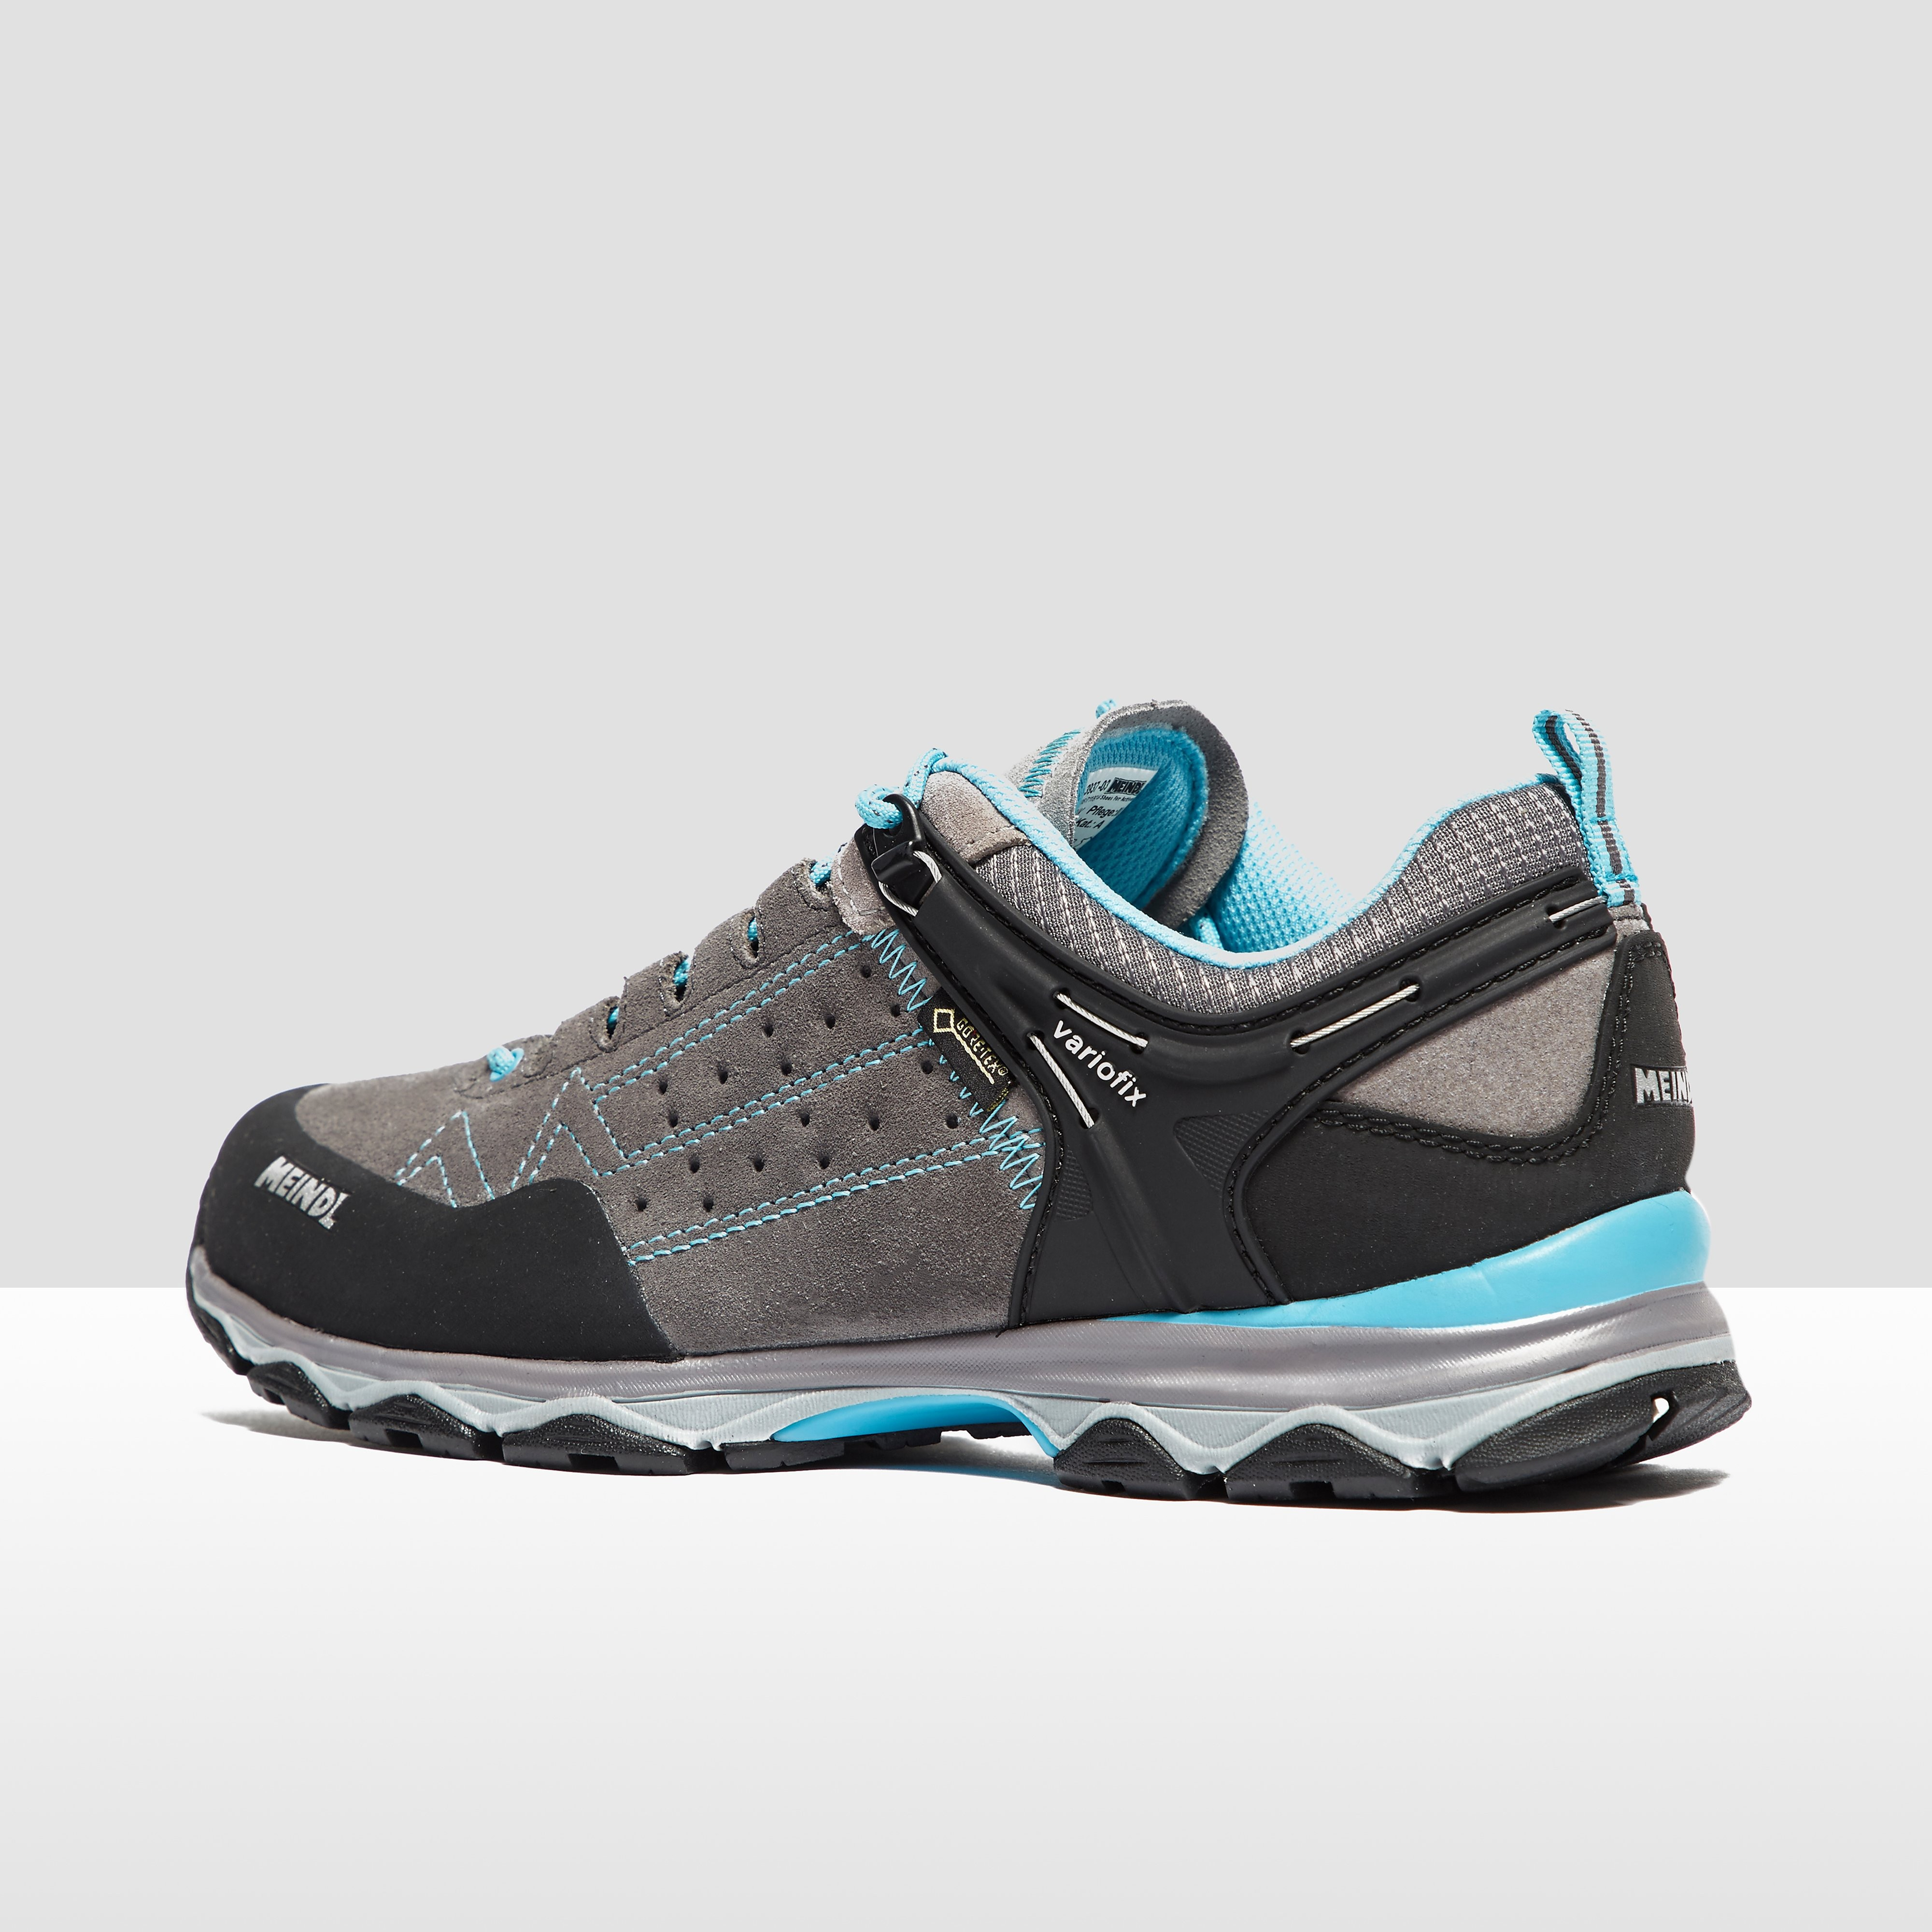 Meindl Ontario Gore-Tex Women's Hiking Shoes